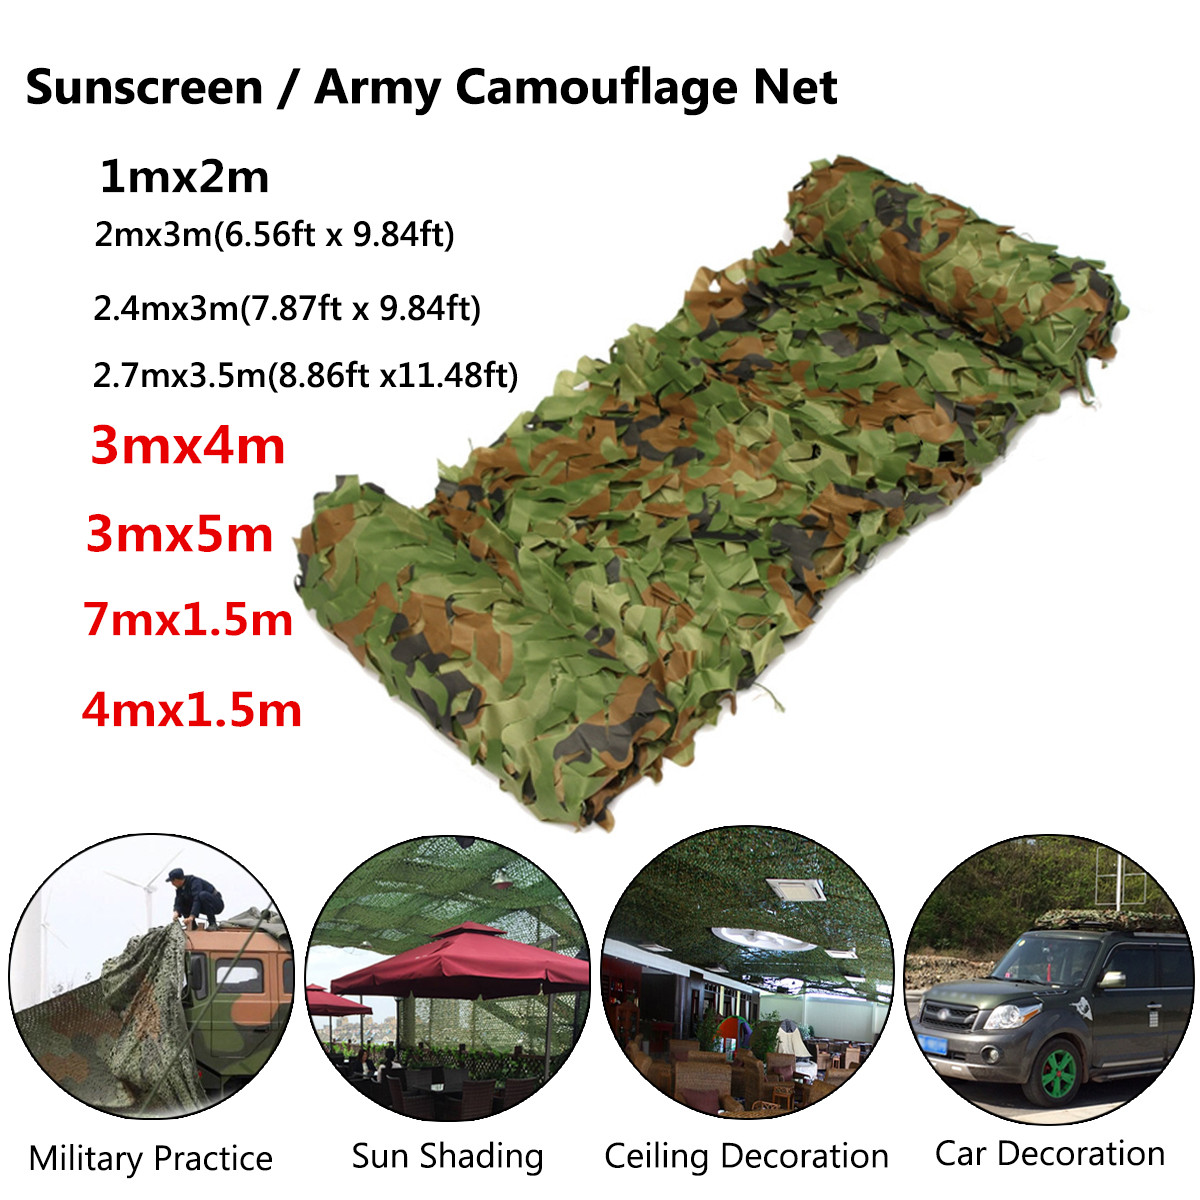 Camouflage Camo Army Net Netting Woodland Camping Hunting Cover Shade 2 Sizes